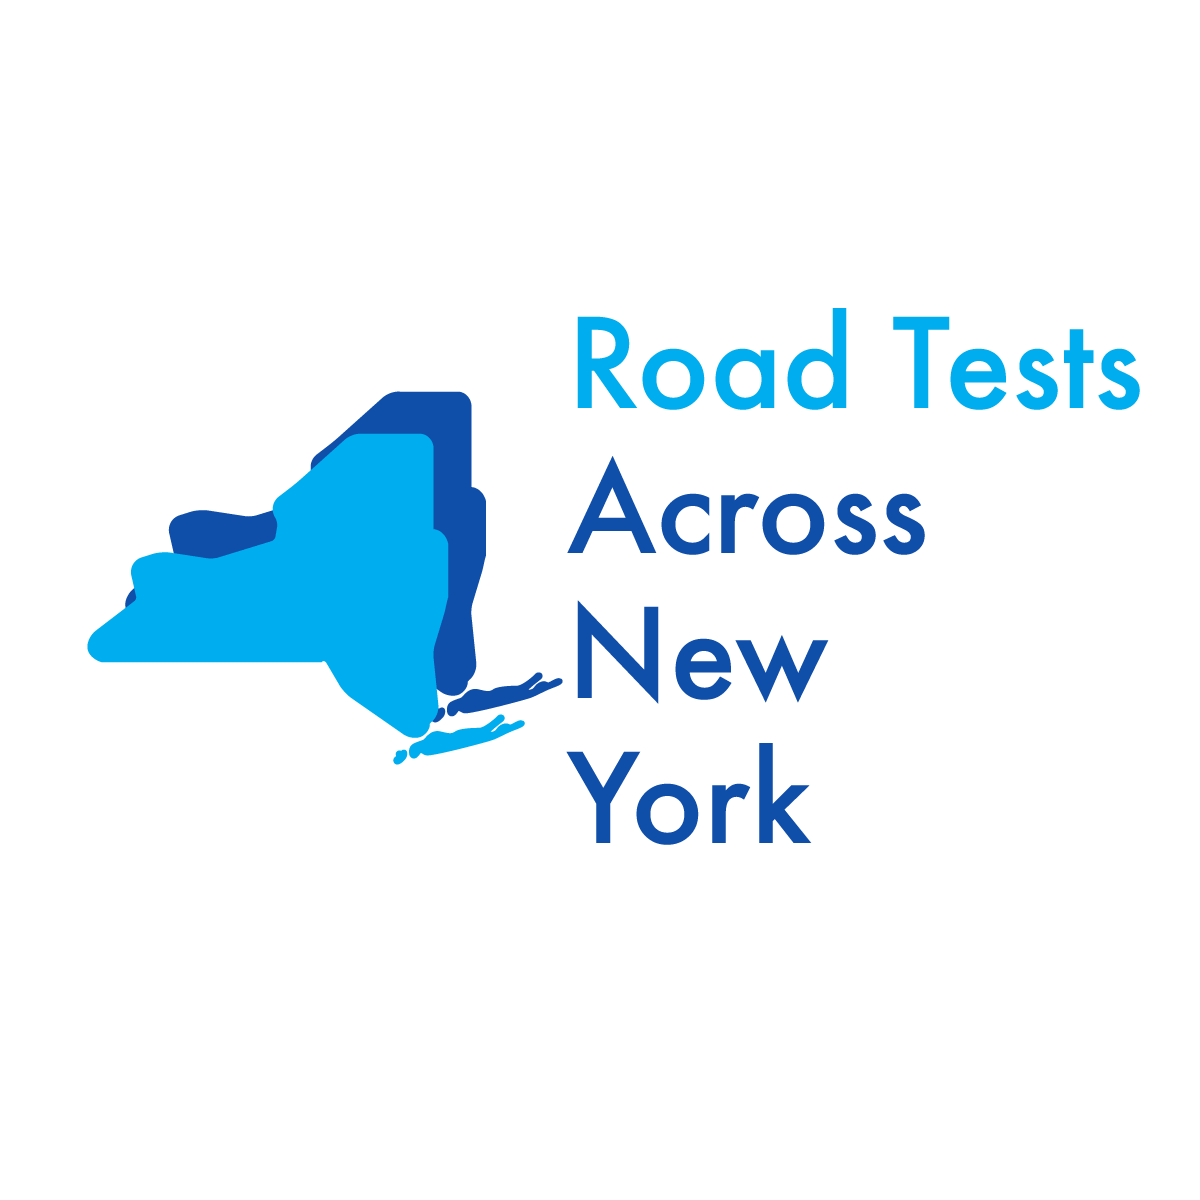 Road Test Car and Driver for New York